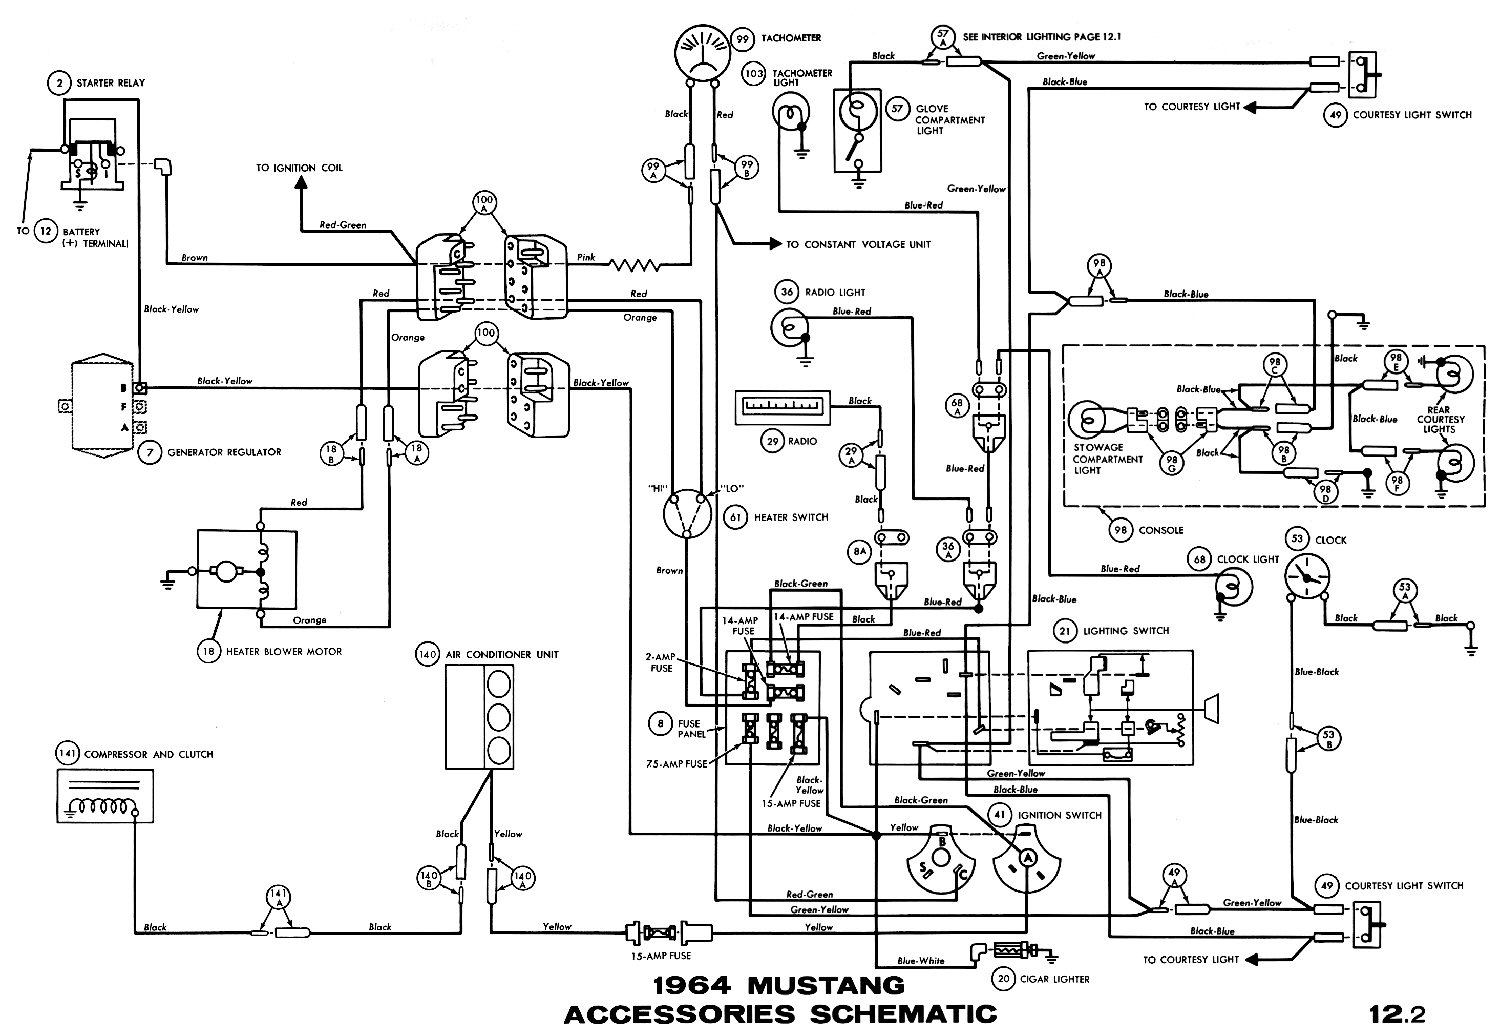 1964m 2015 mustang wiring diagram schematic mustang 2015 \u2022 free wiring 2015 ford focus wiring diagram at aneh.co